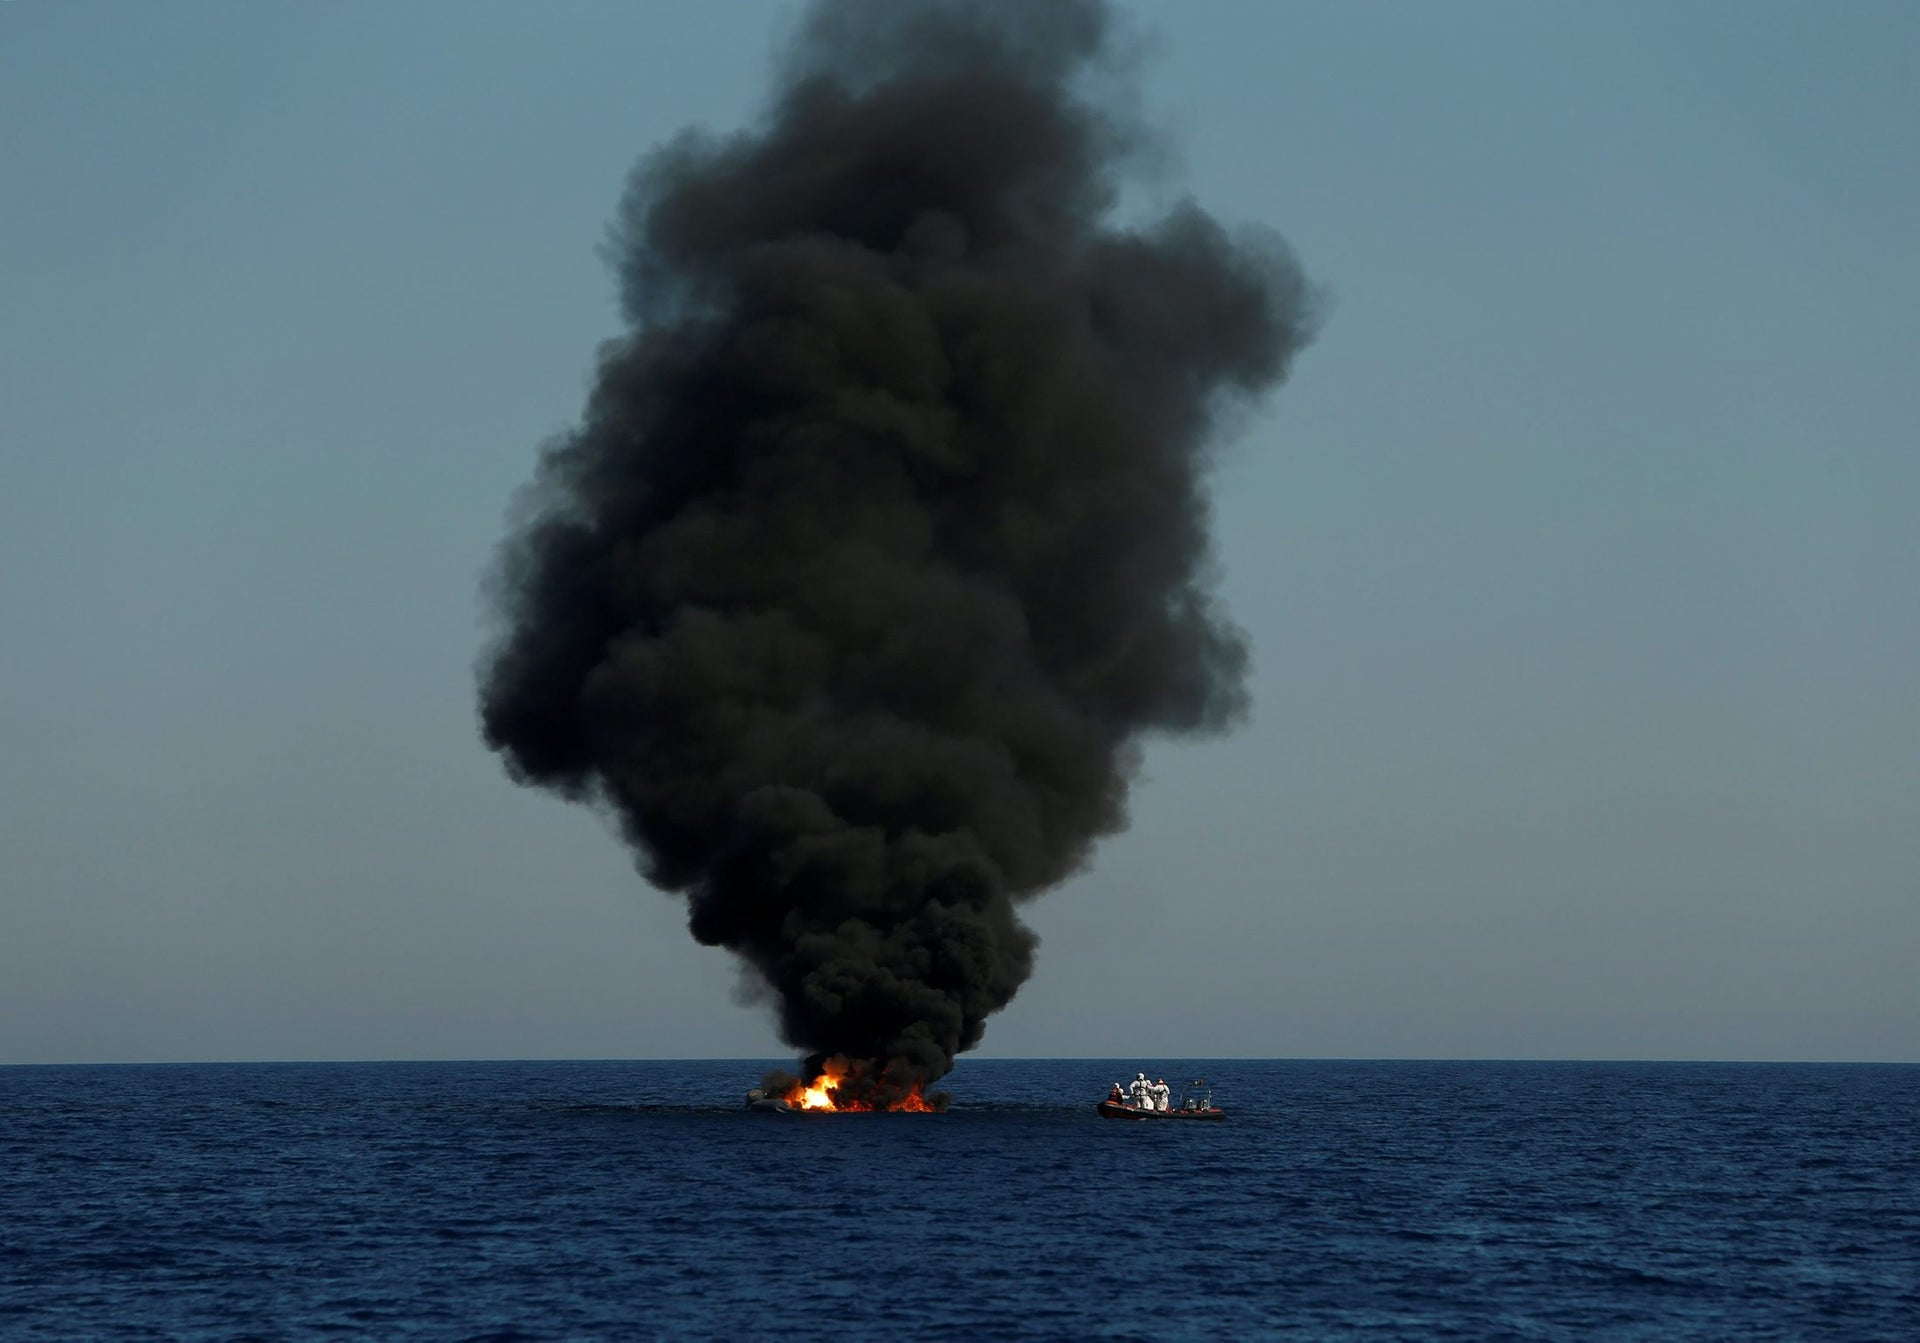 A rubber dinghy is burnt and sunk after the migrants on board were rescued by the Malta-based NGO Migrant Offshore Aid Station (MOAS) in the central Mediterranean in international waters some 15 nautical miles off the coast of Zawiya in Libya, April 14, 2017.